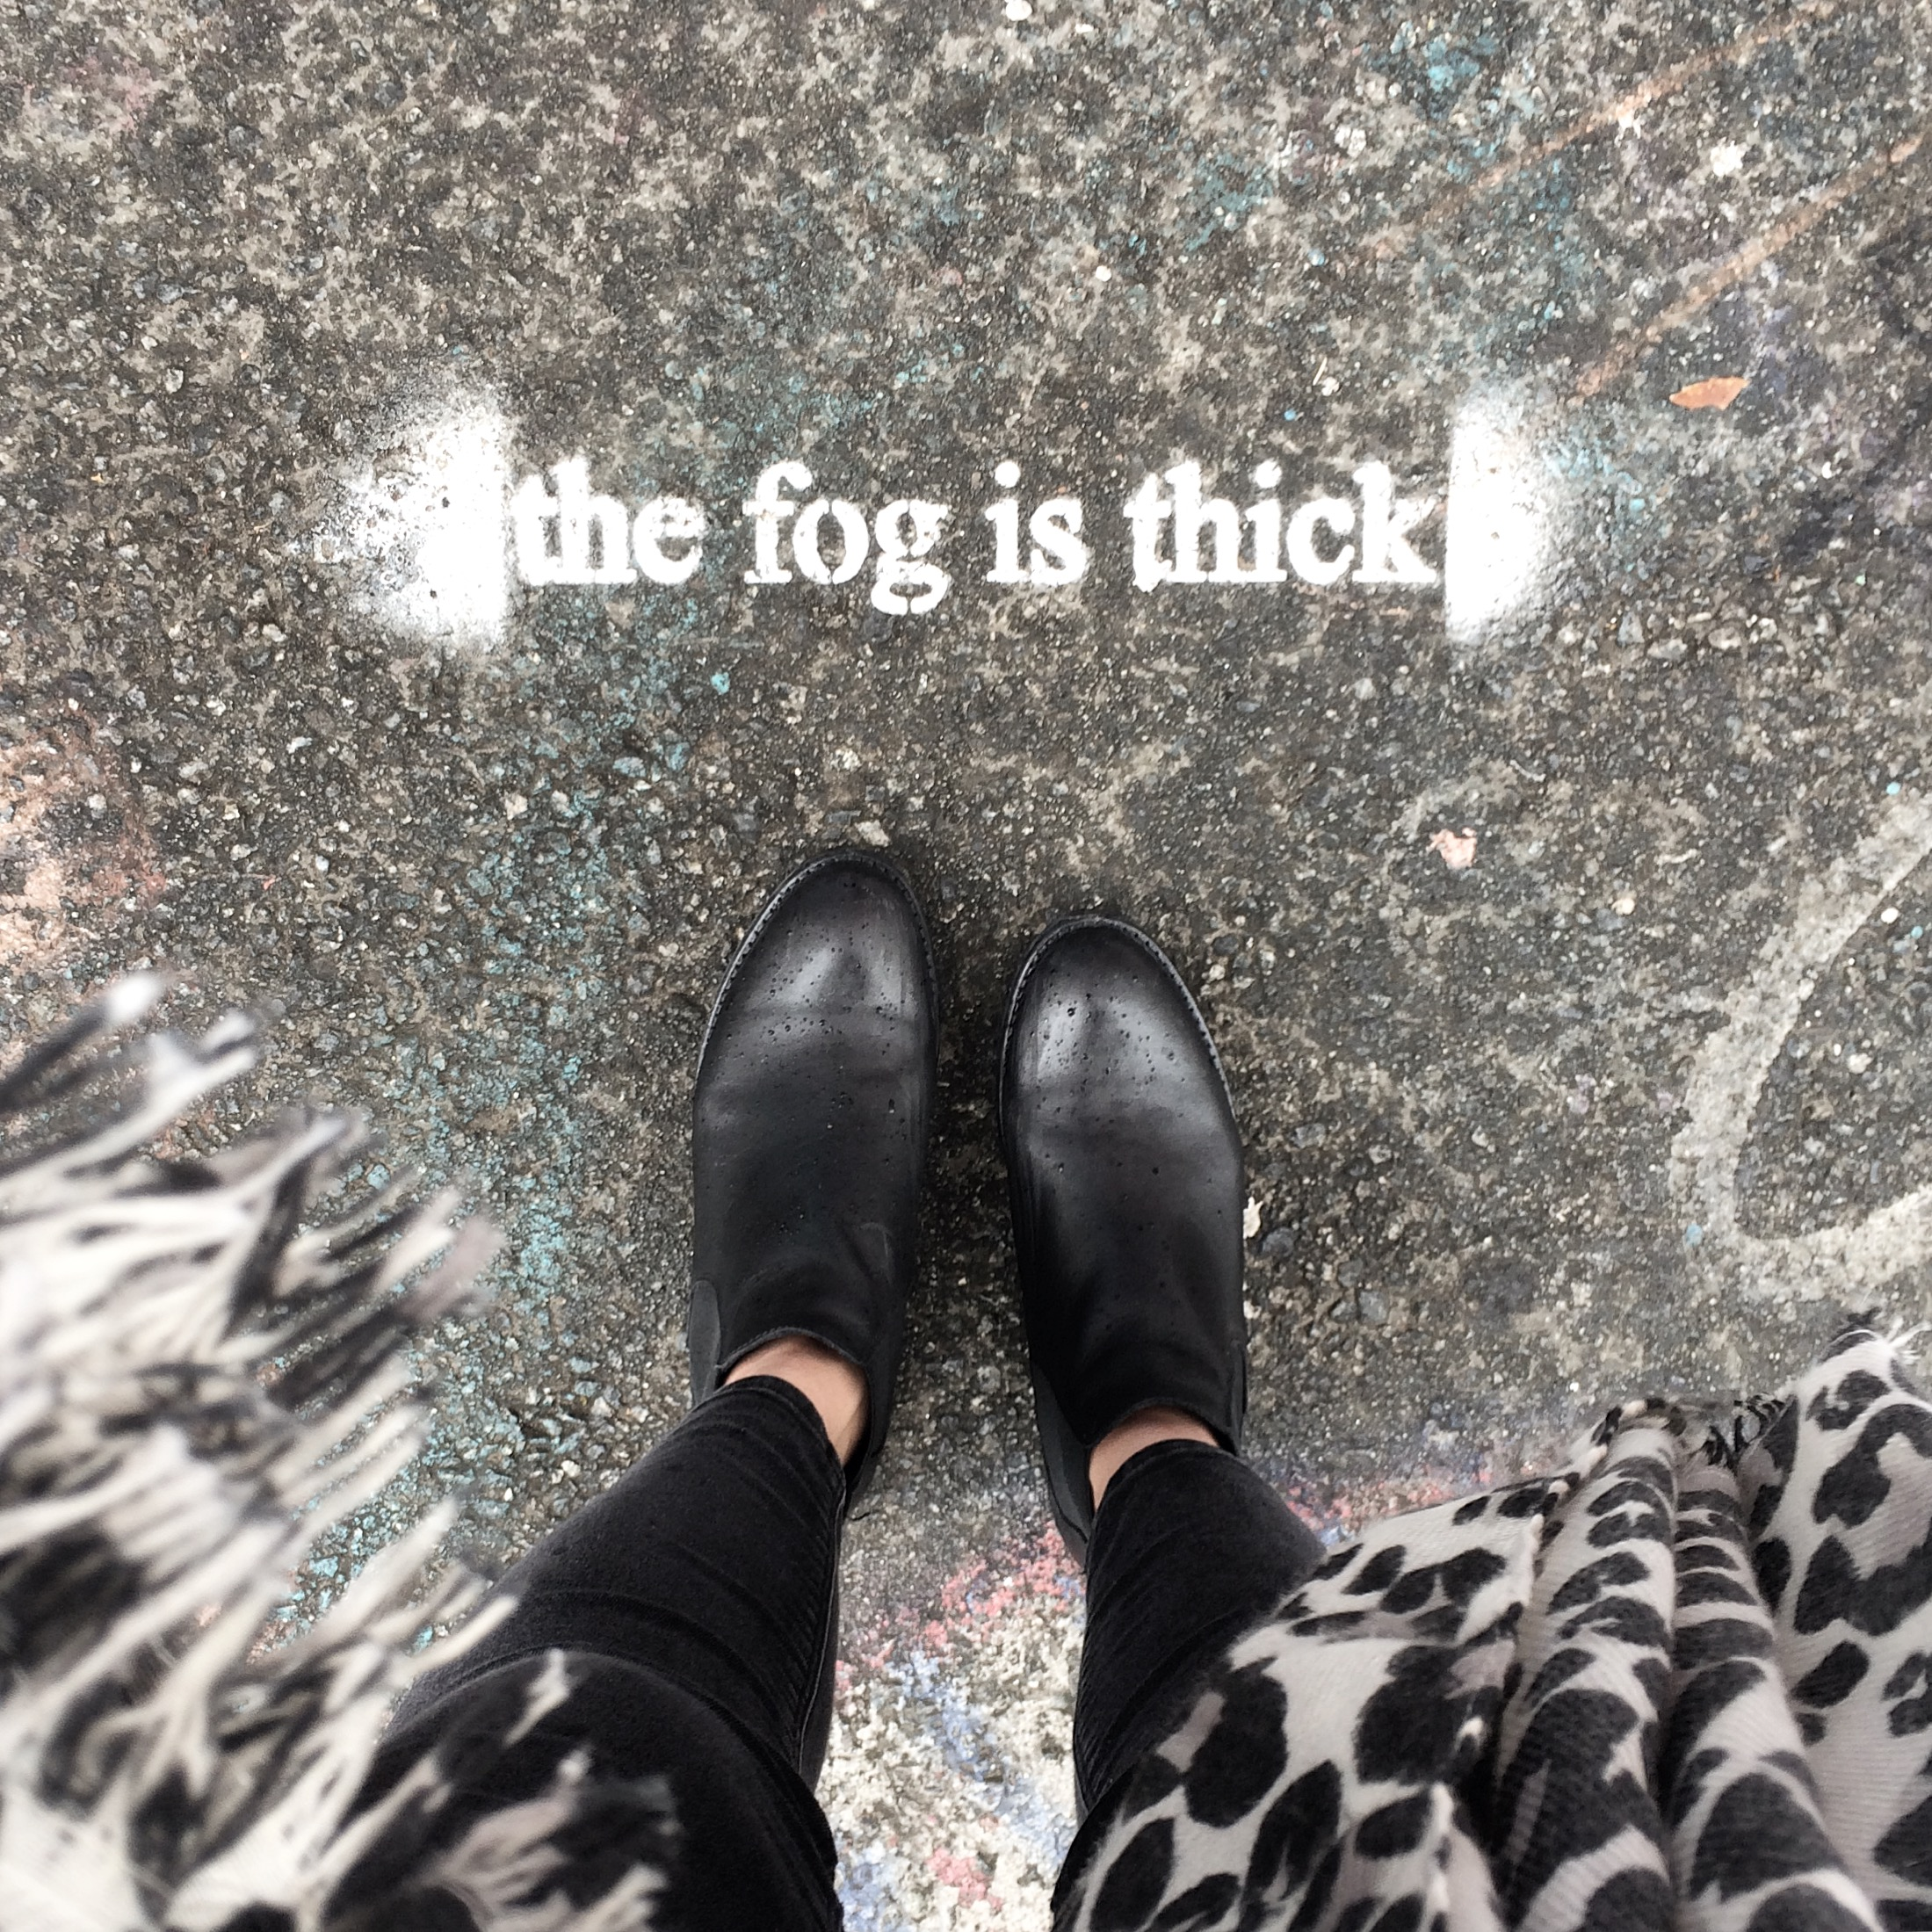 thefogisthick.JPG